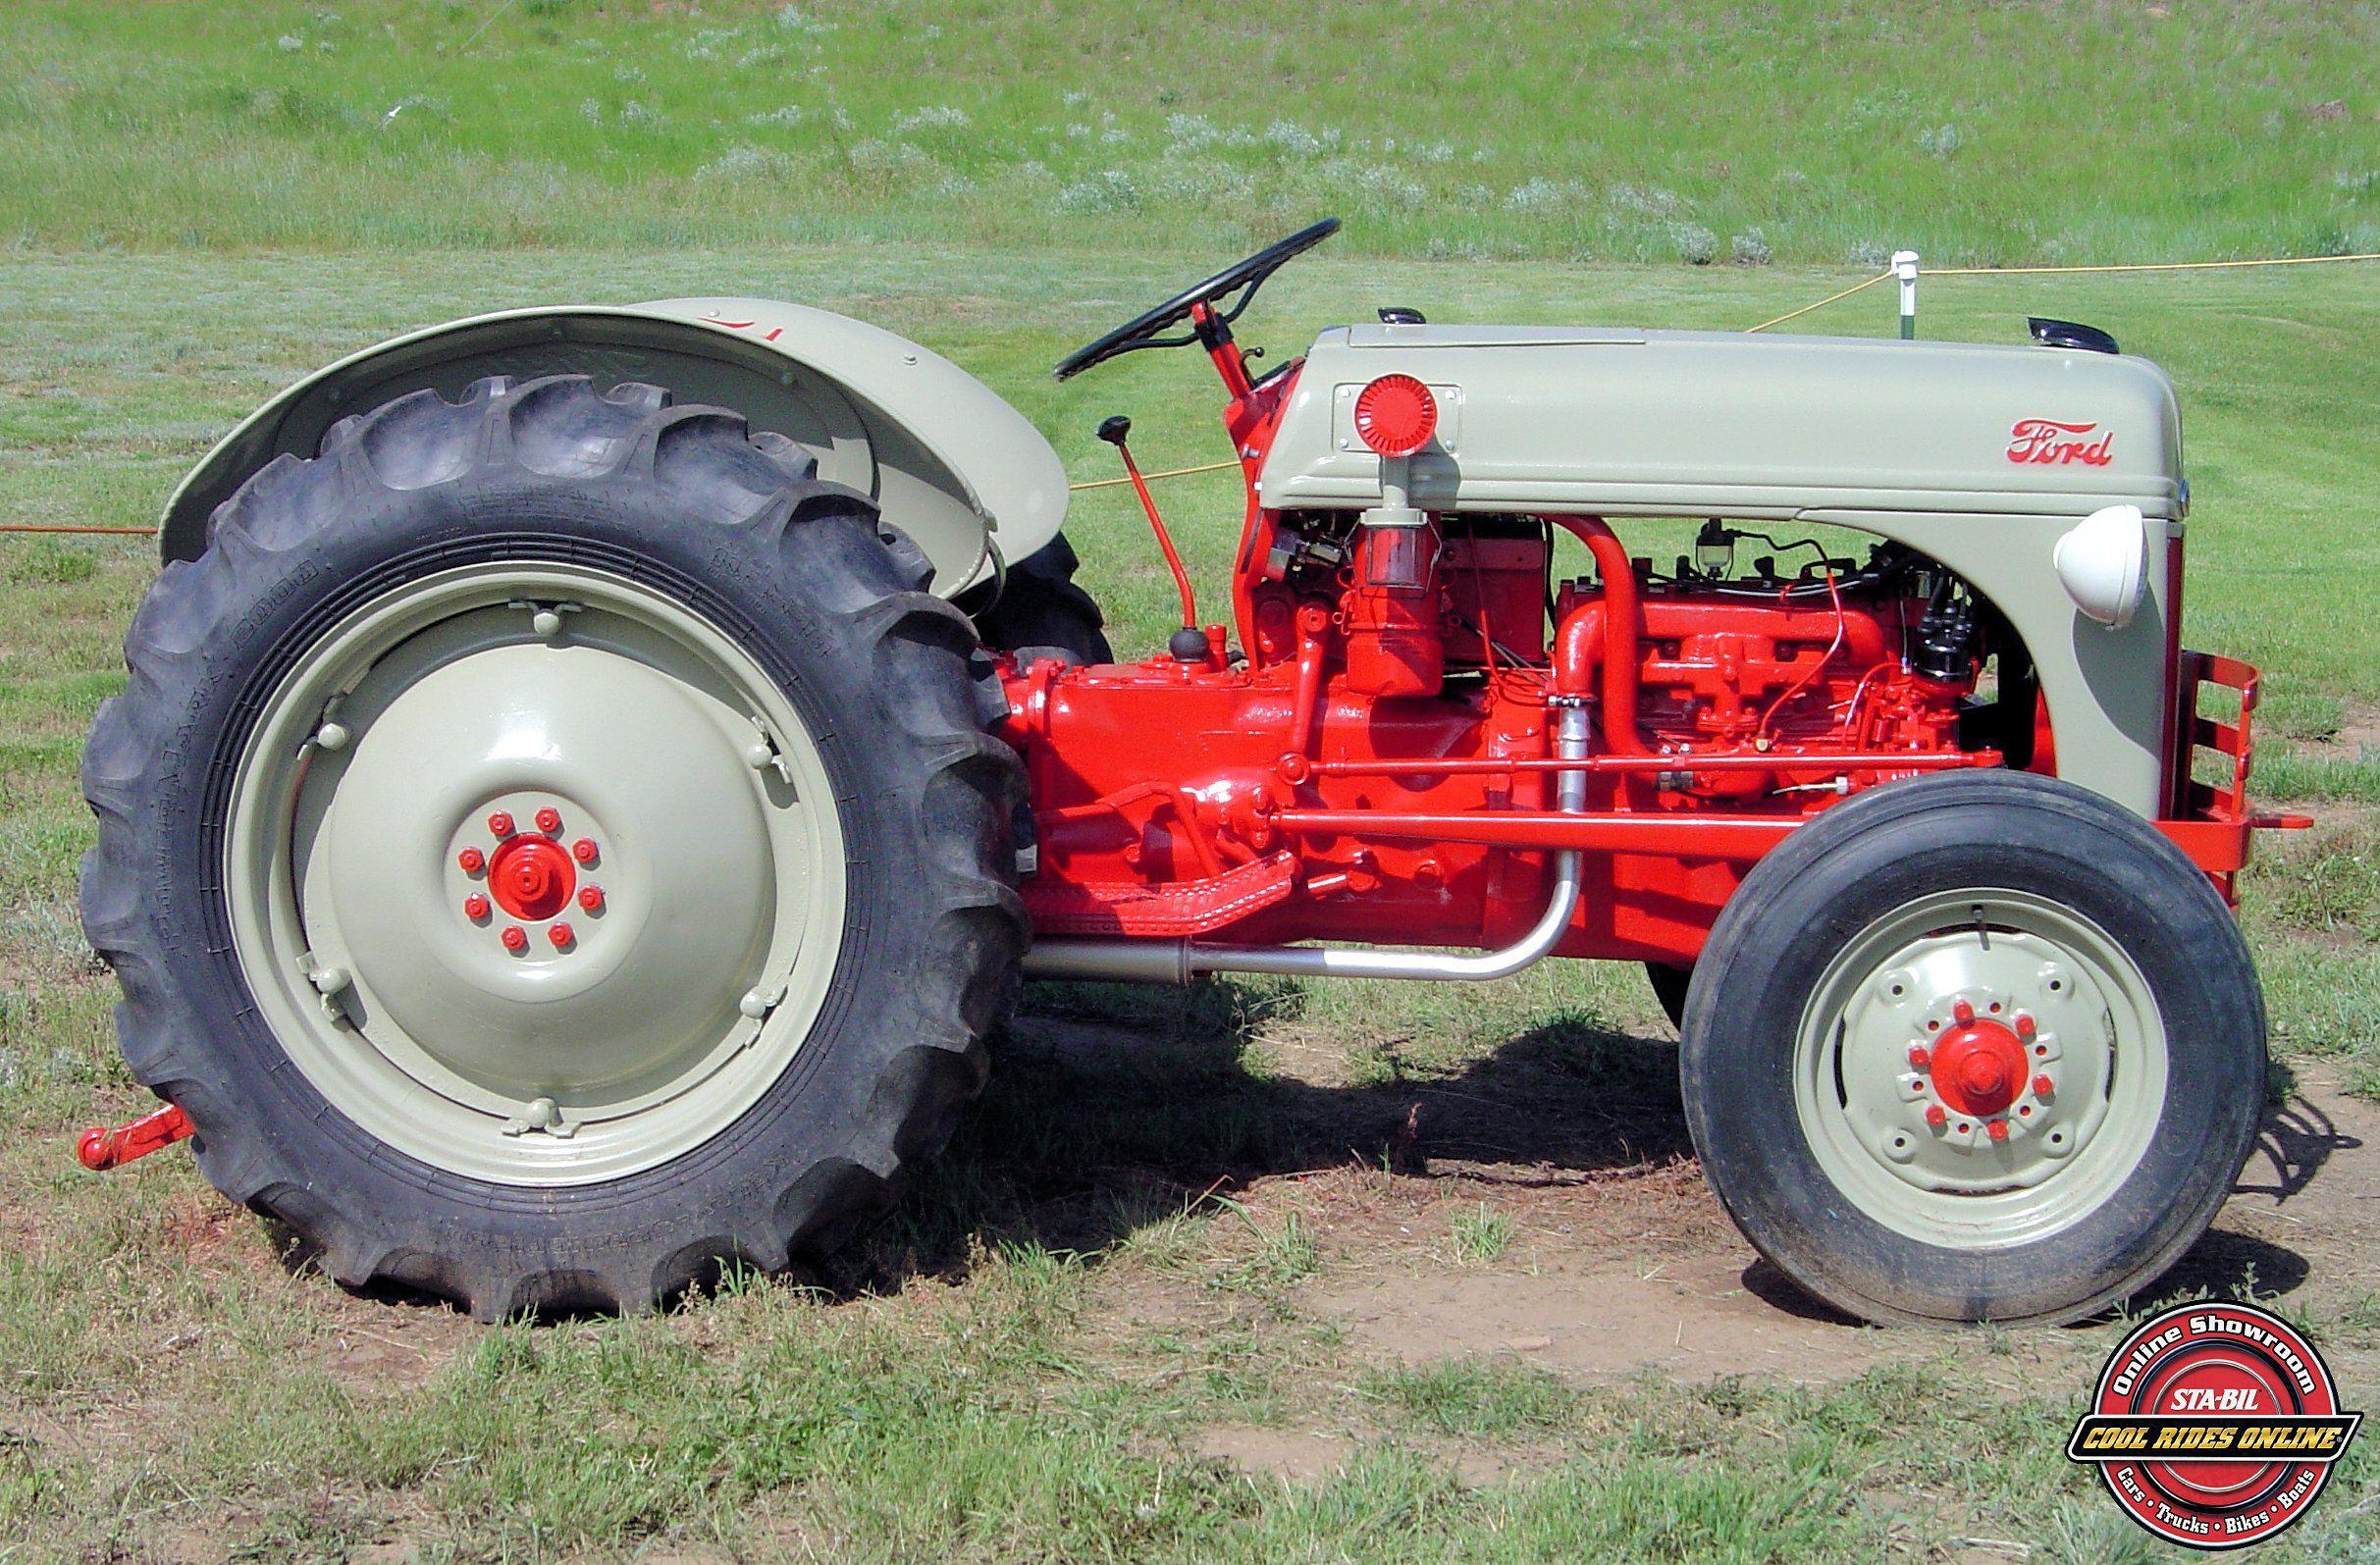 Ford Tractor Engine : Darwin sackett s ford n tractor representing start